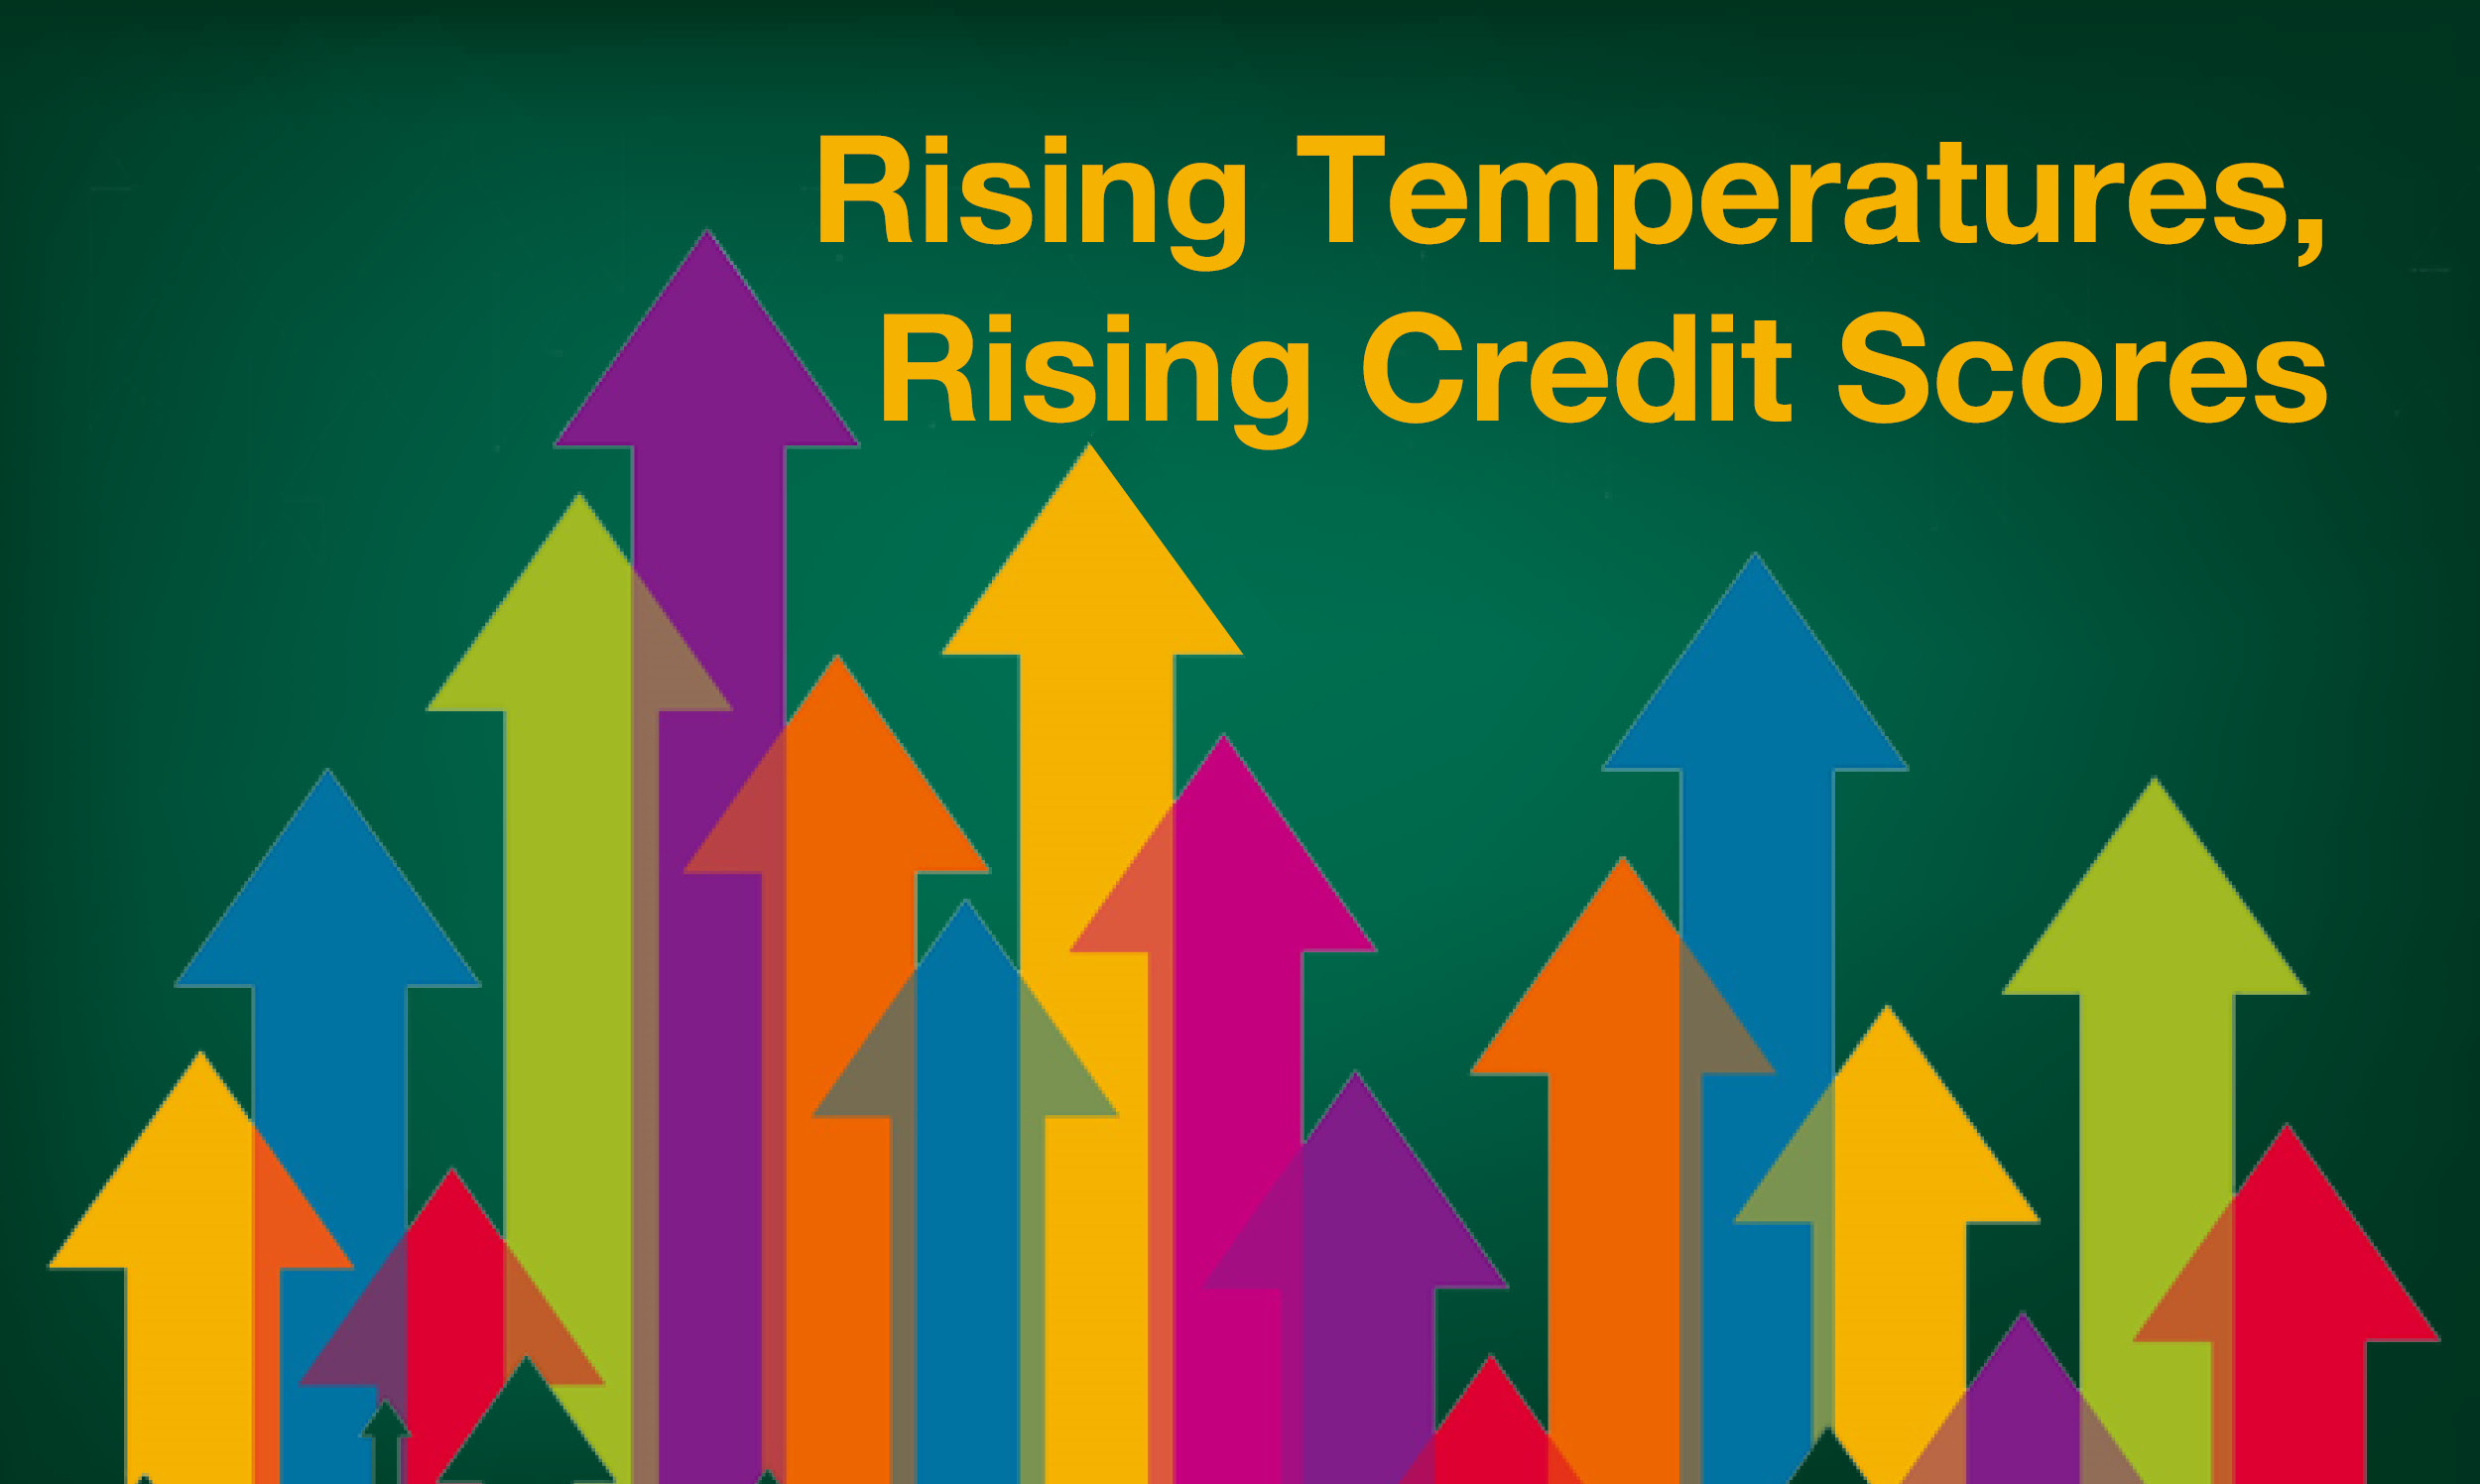 Rising Temperatures, Rising Credit Scores